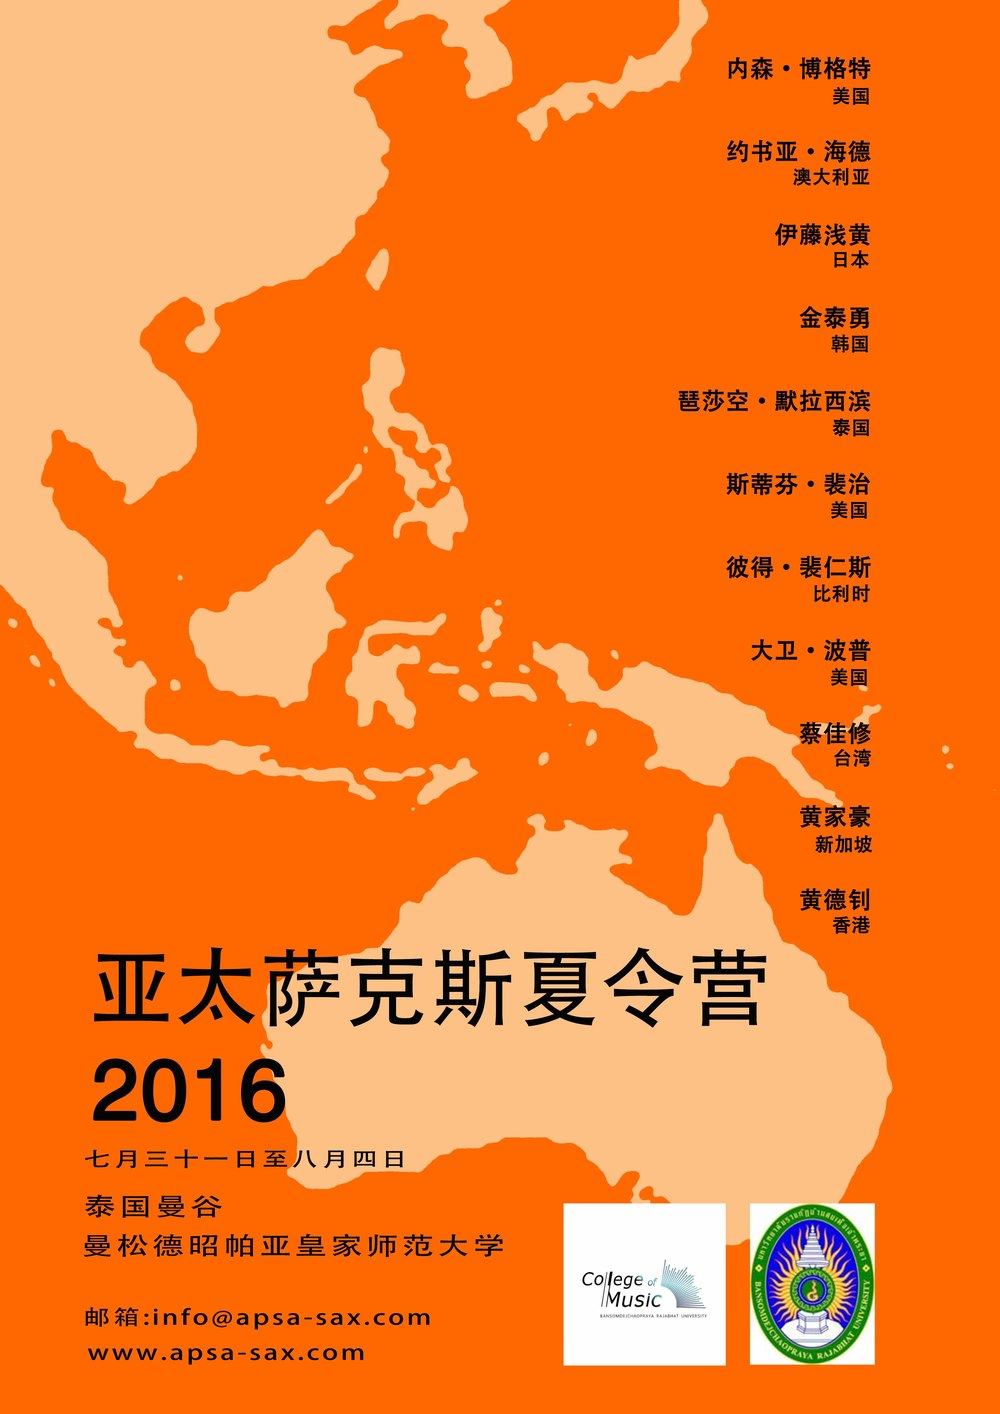 ASPA Poster 2016 Chinese version.jpg